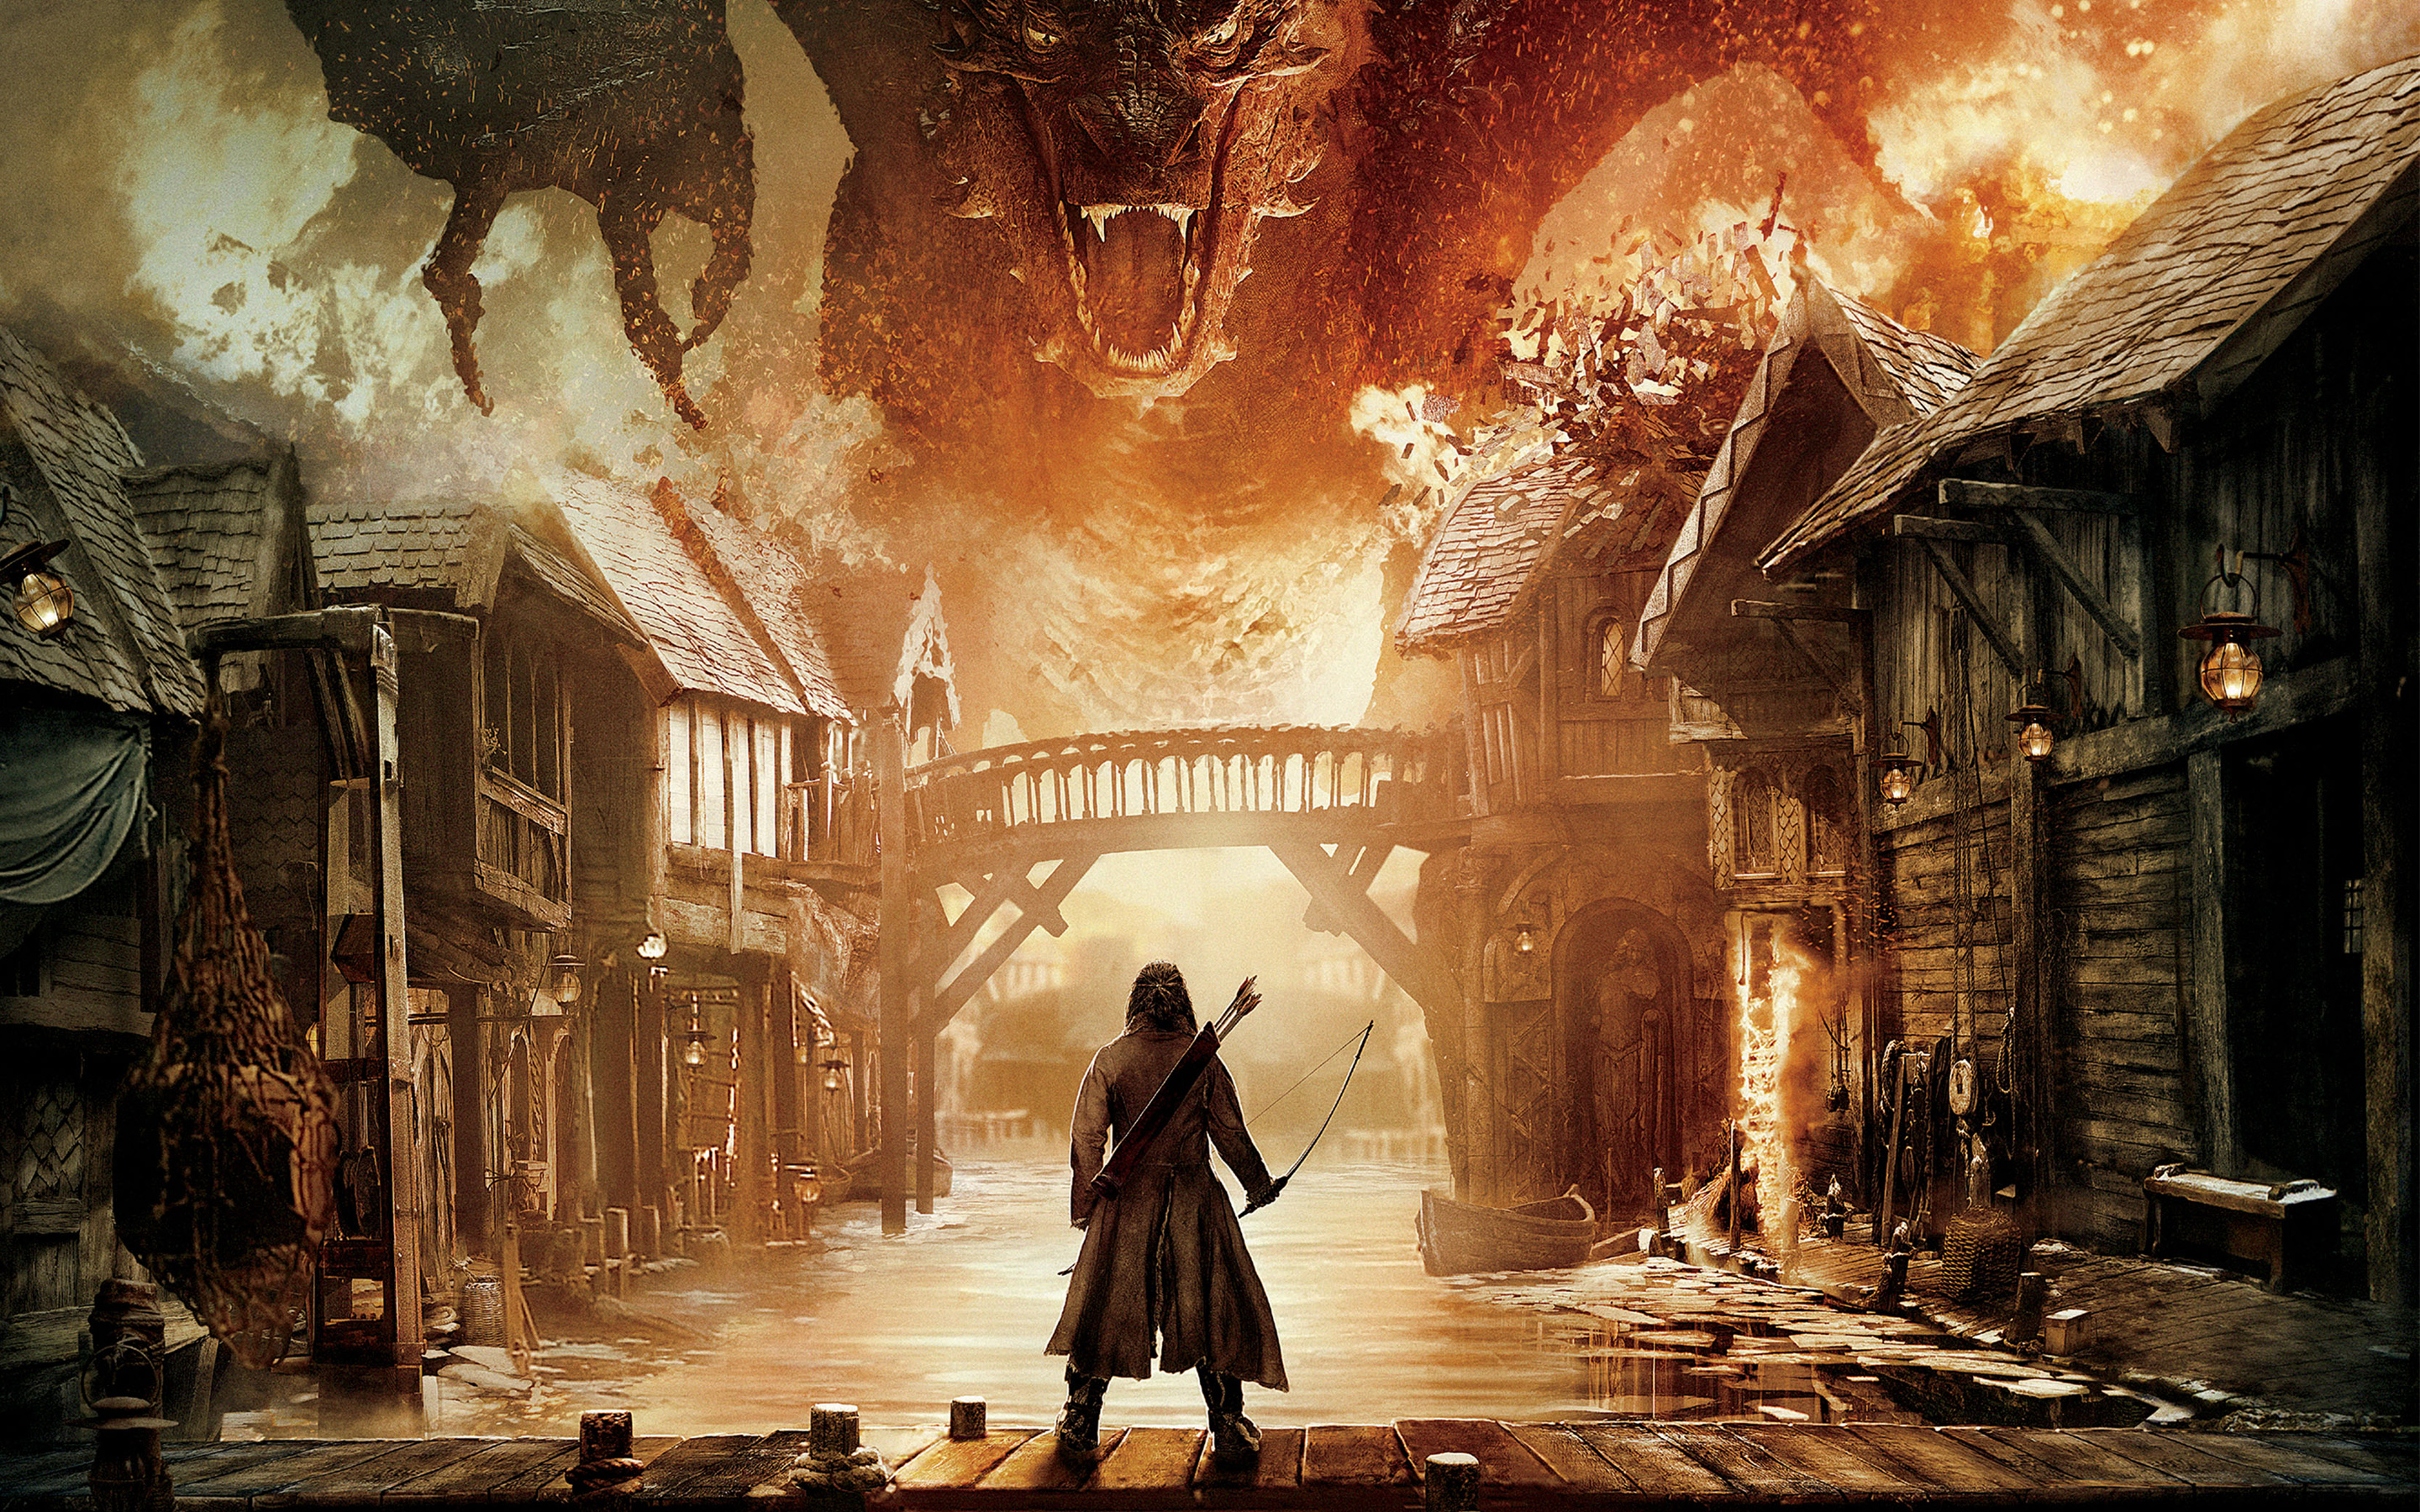 Hobbit: Beş Orduların Savaşı / The Battle of Five Armies